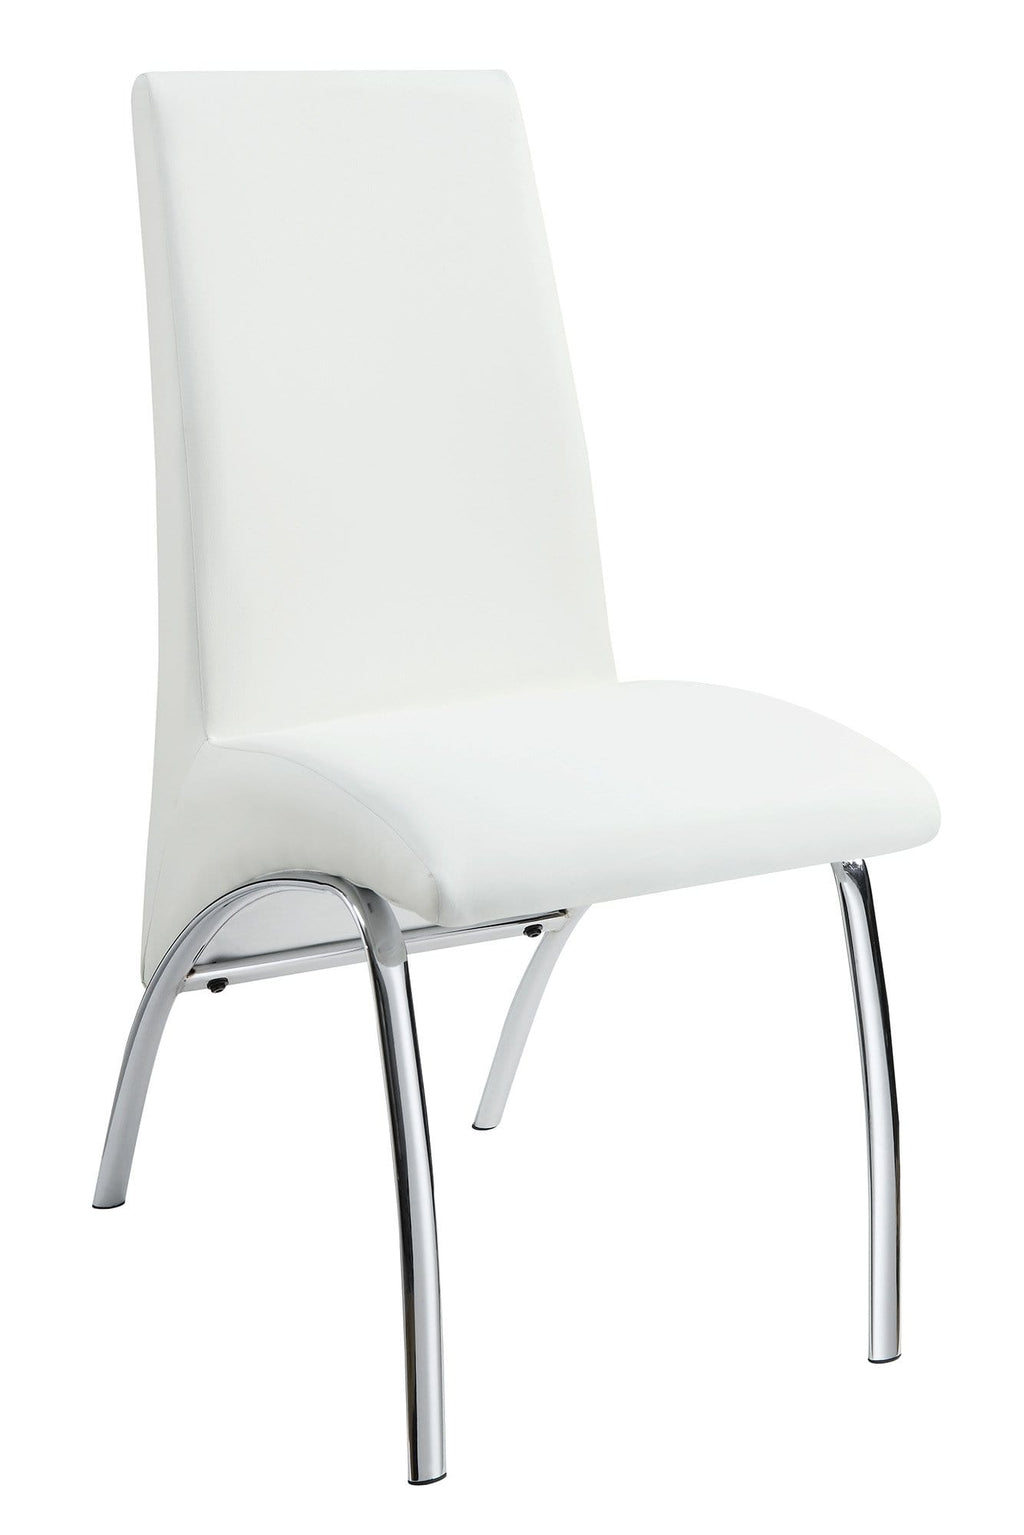 Ophelia Dining Chair - What A Room Furniture